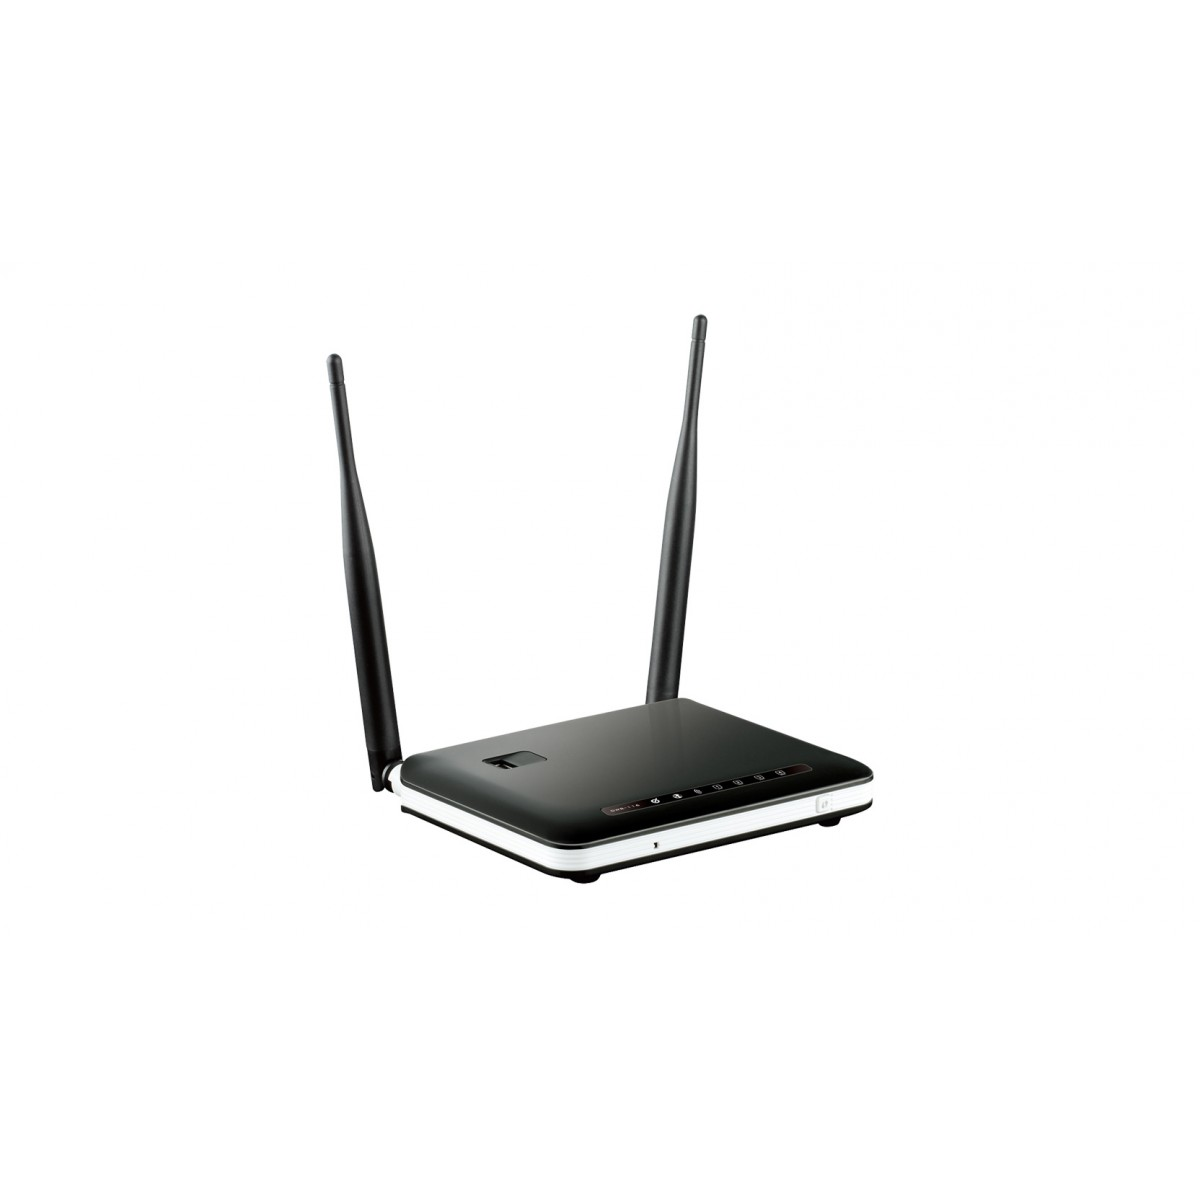 D-LINK DWR-116 4G Multi-WAN Wireless Router